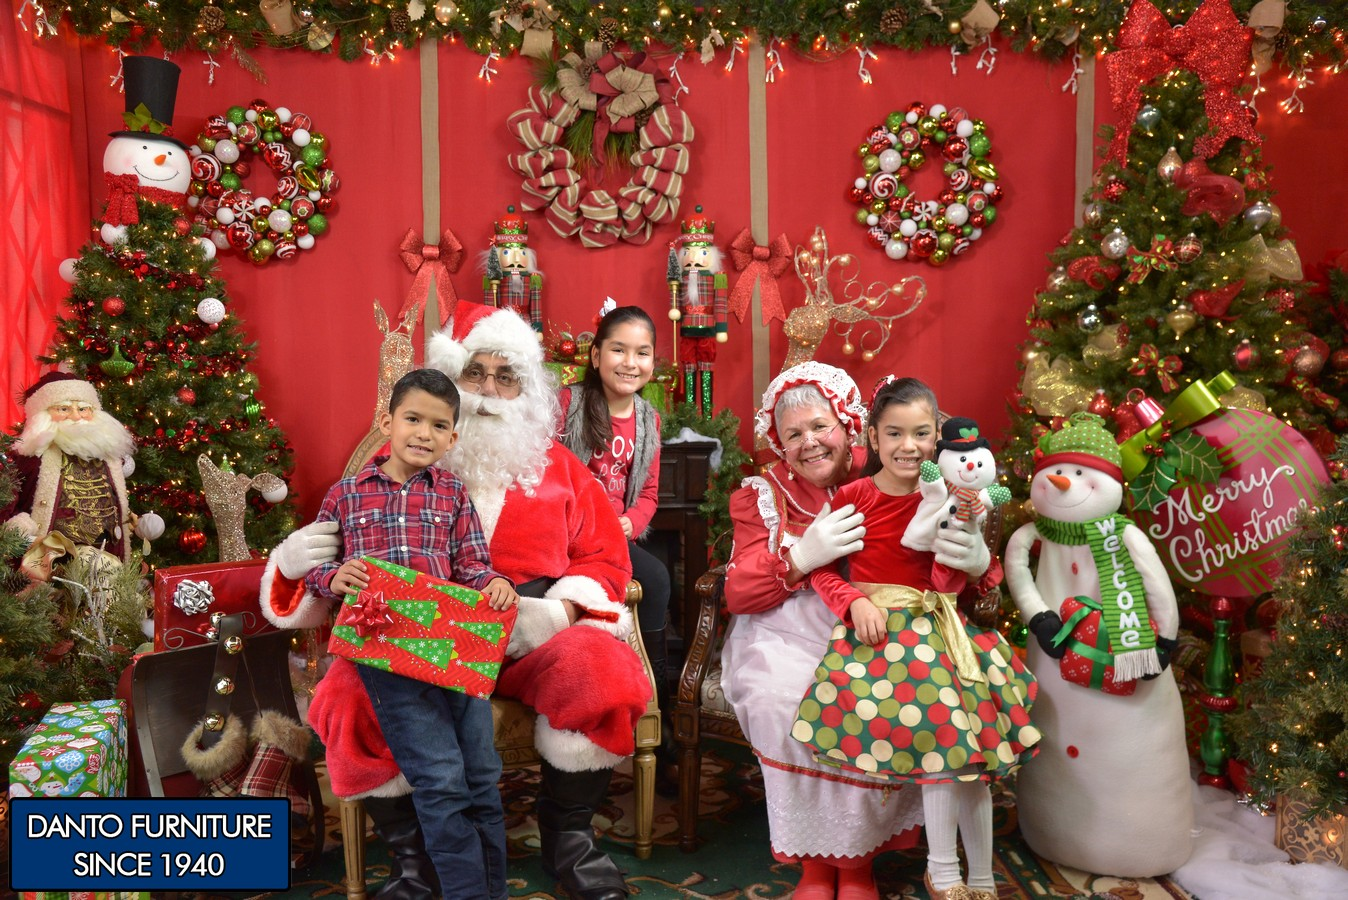 5th Annual Merry Christmas With Santa Event